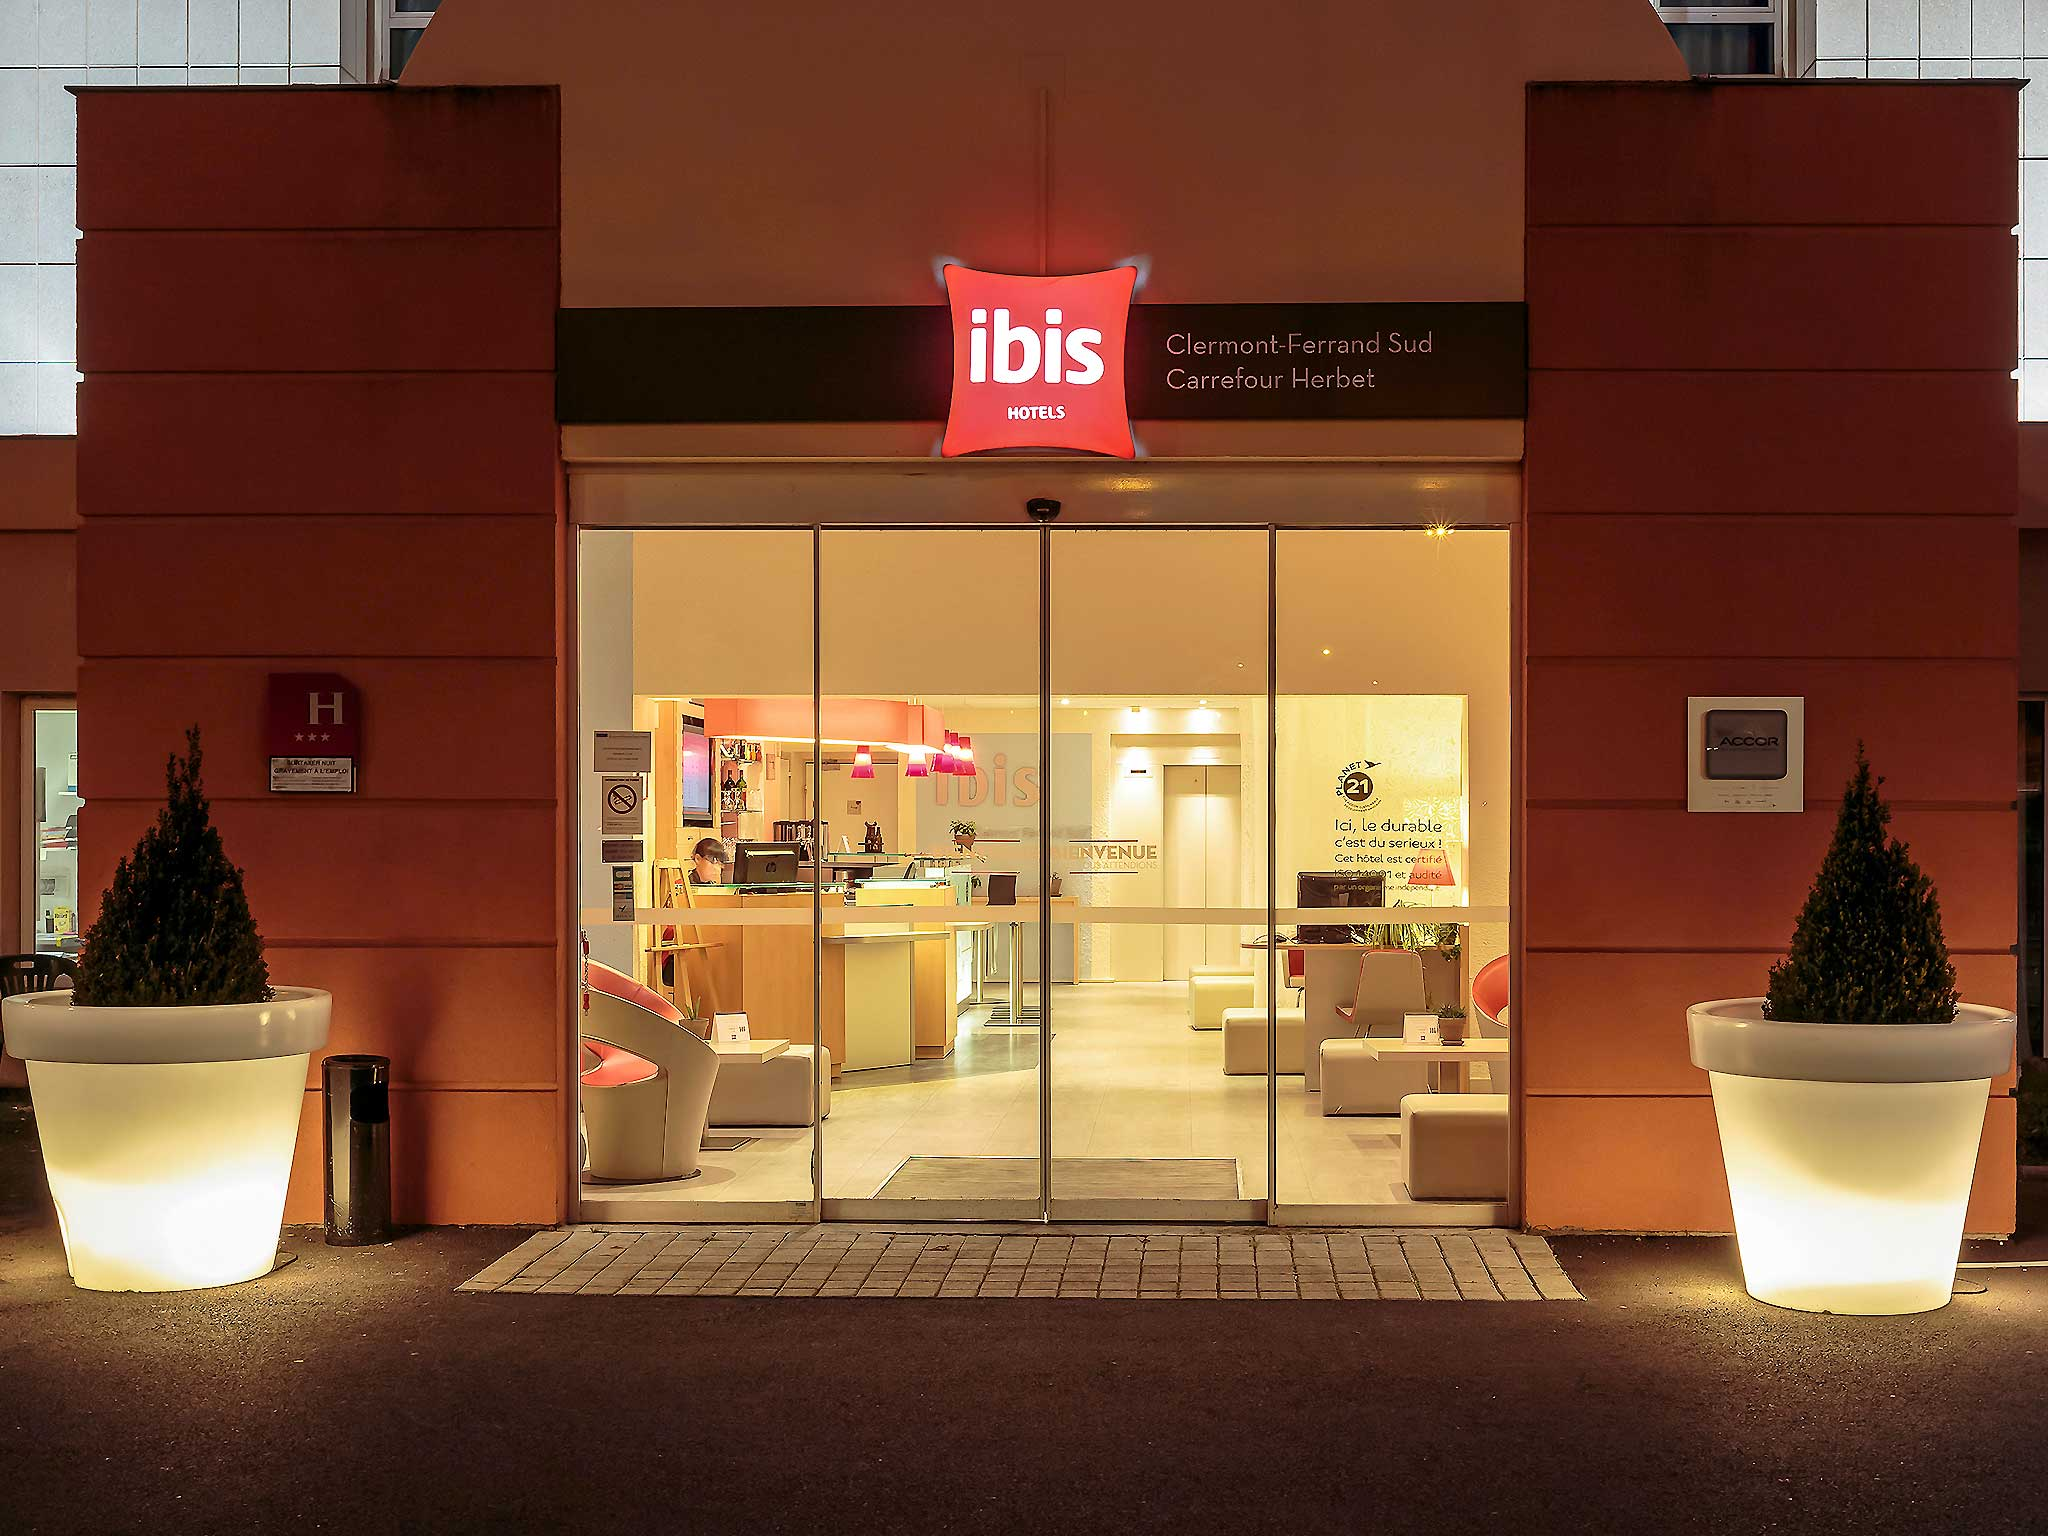 Hotel – ibis Clermont Ferrand Sud Carrefour Herbet